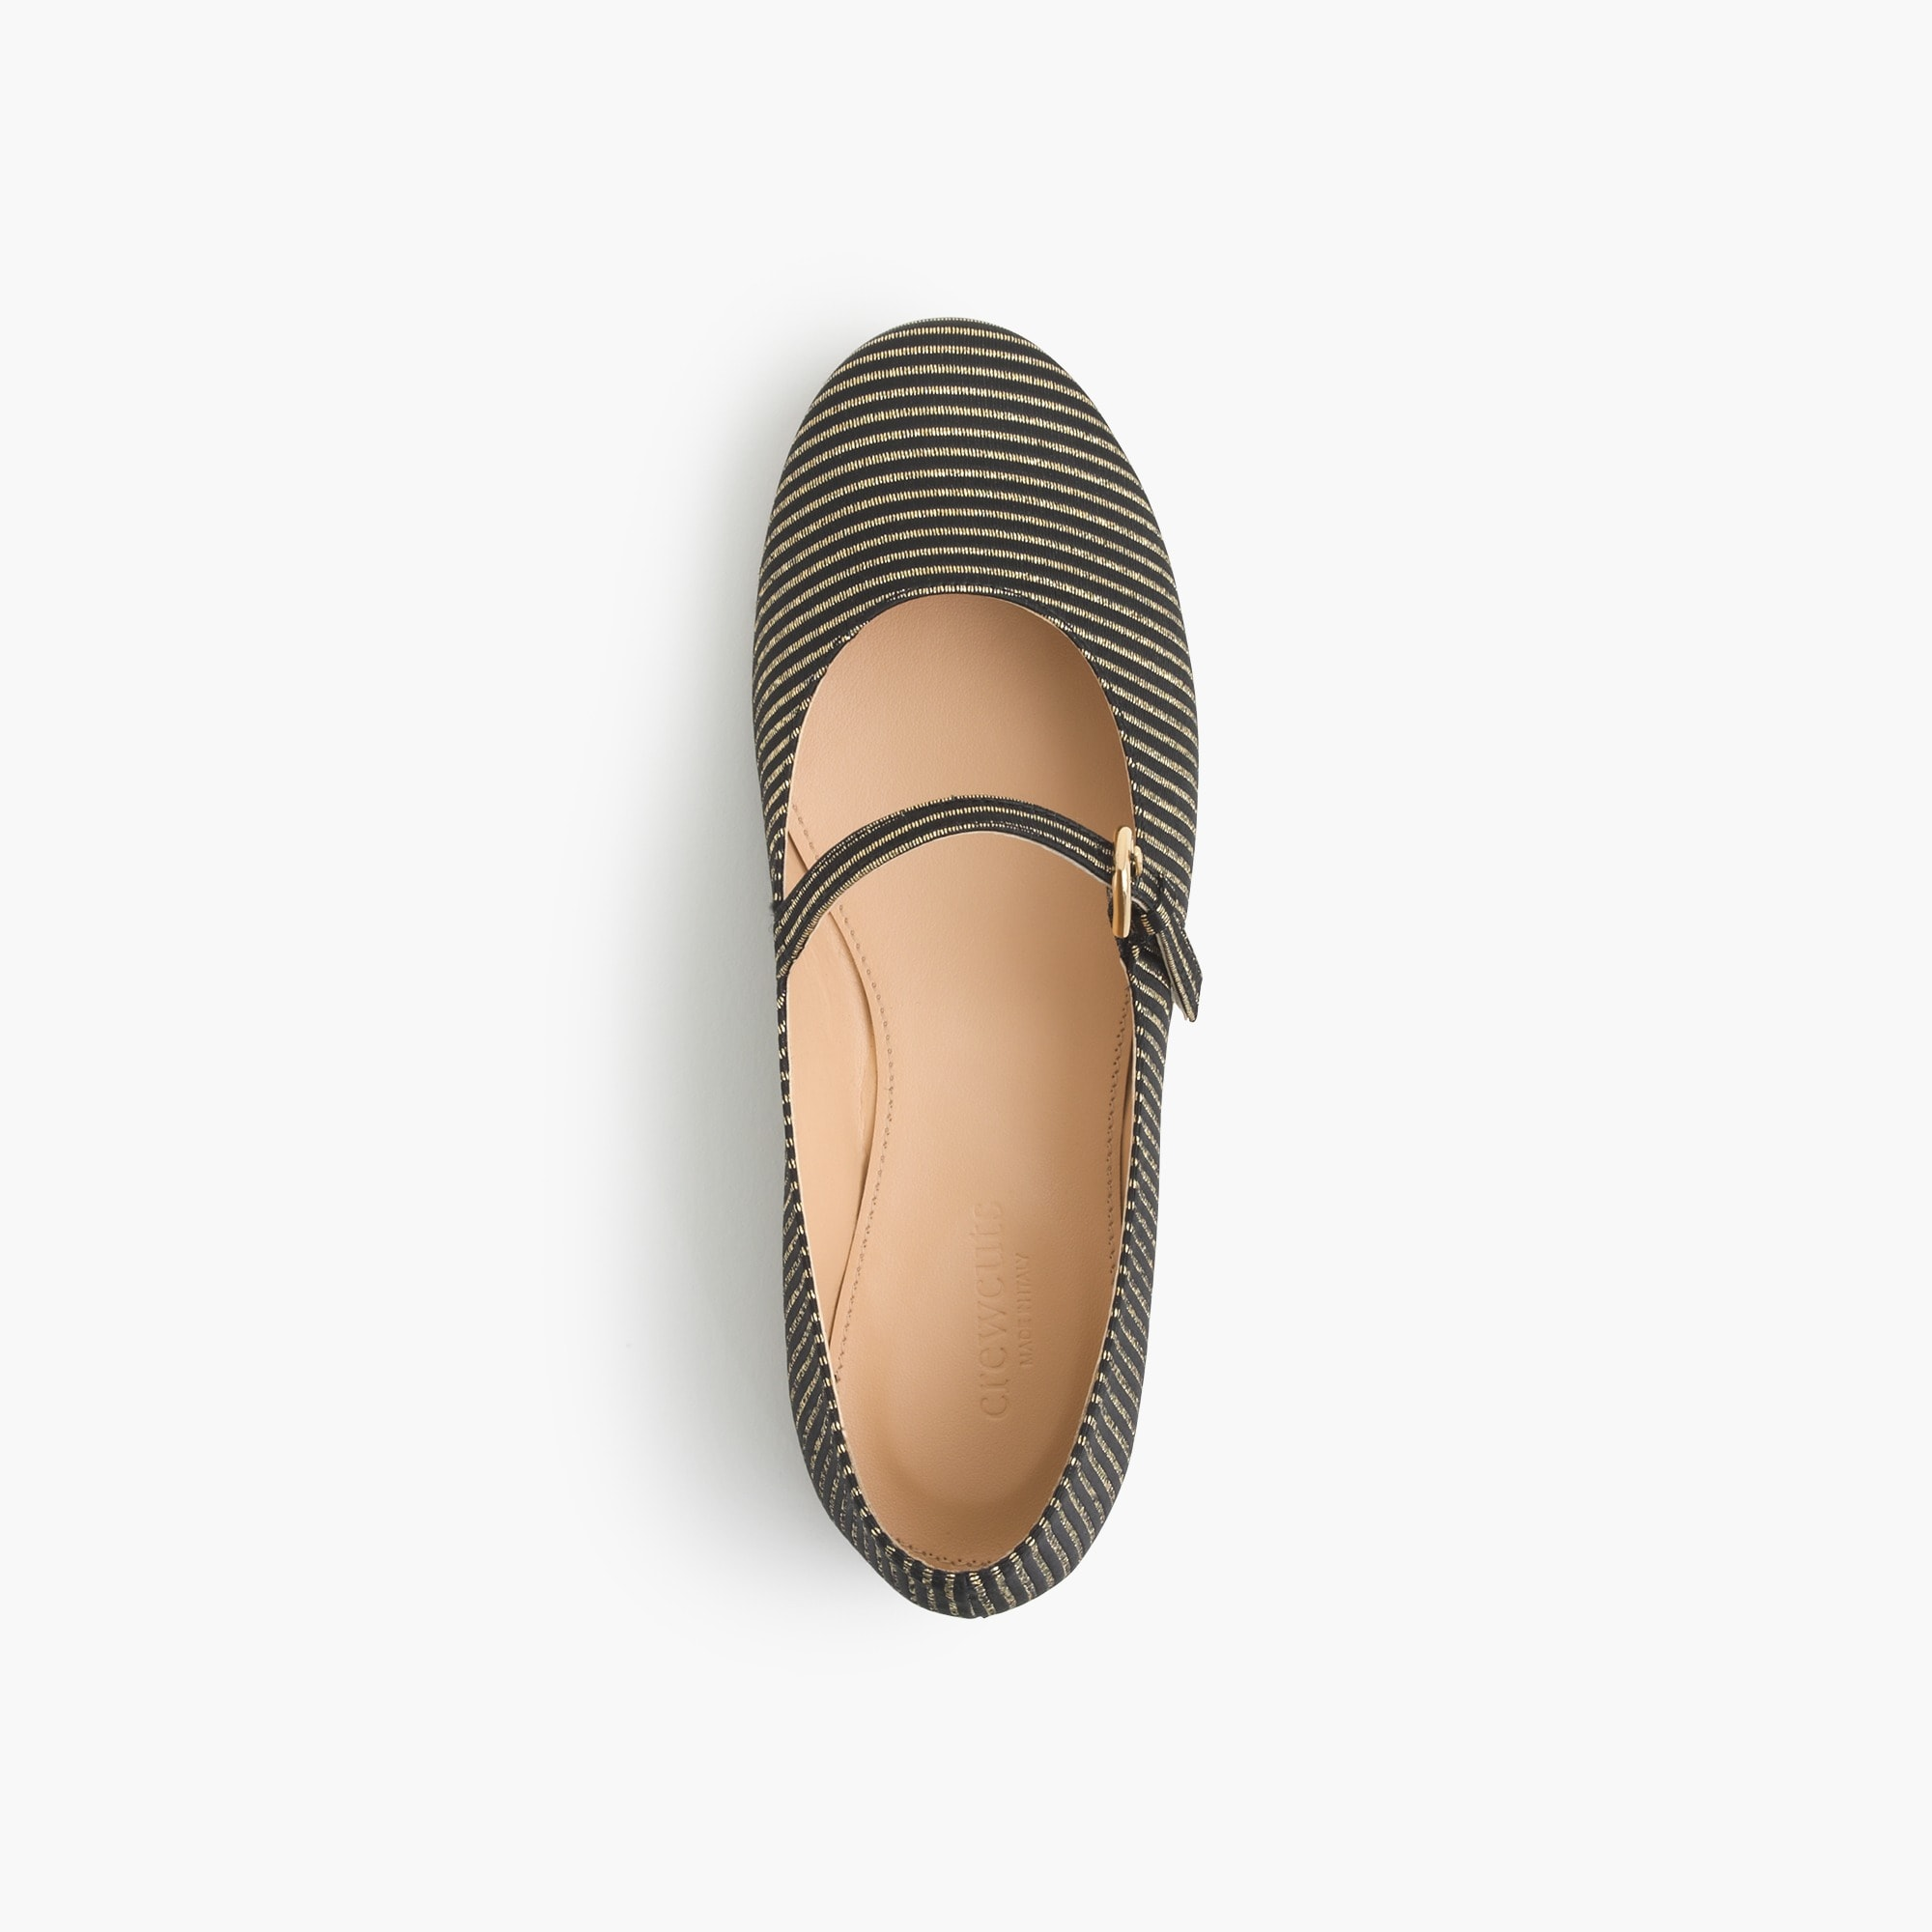 Image 1 for Girls' gold-striped Mary Janes